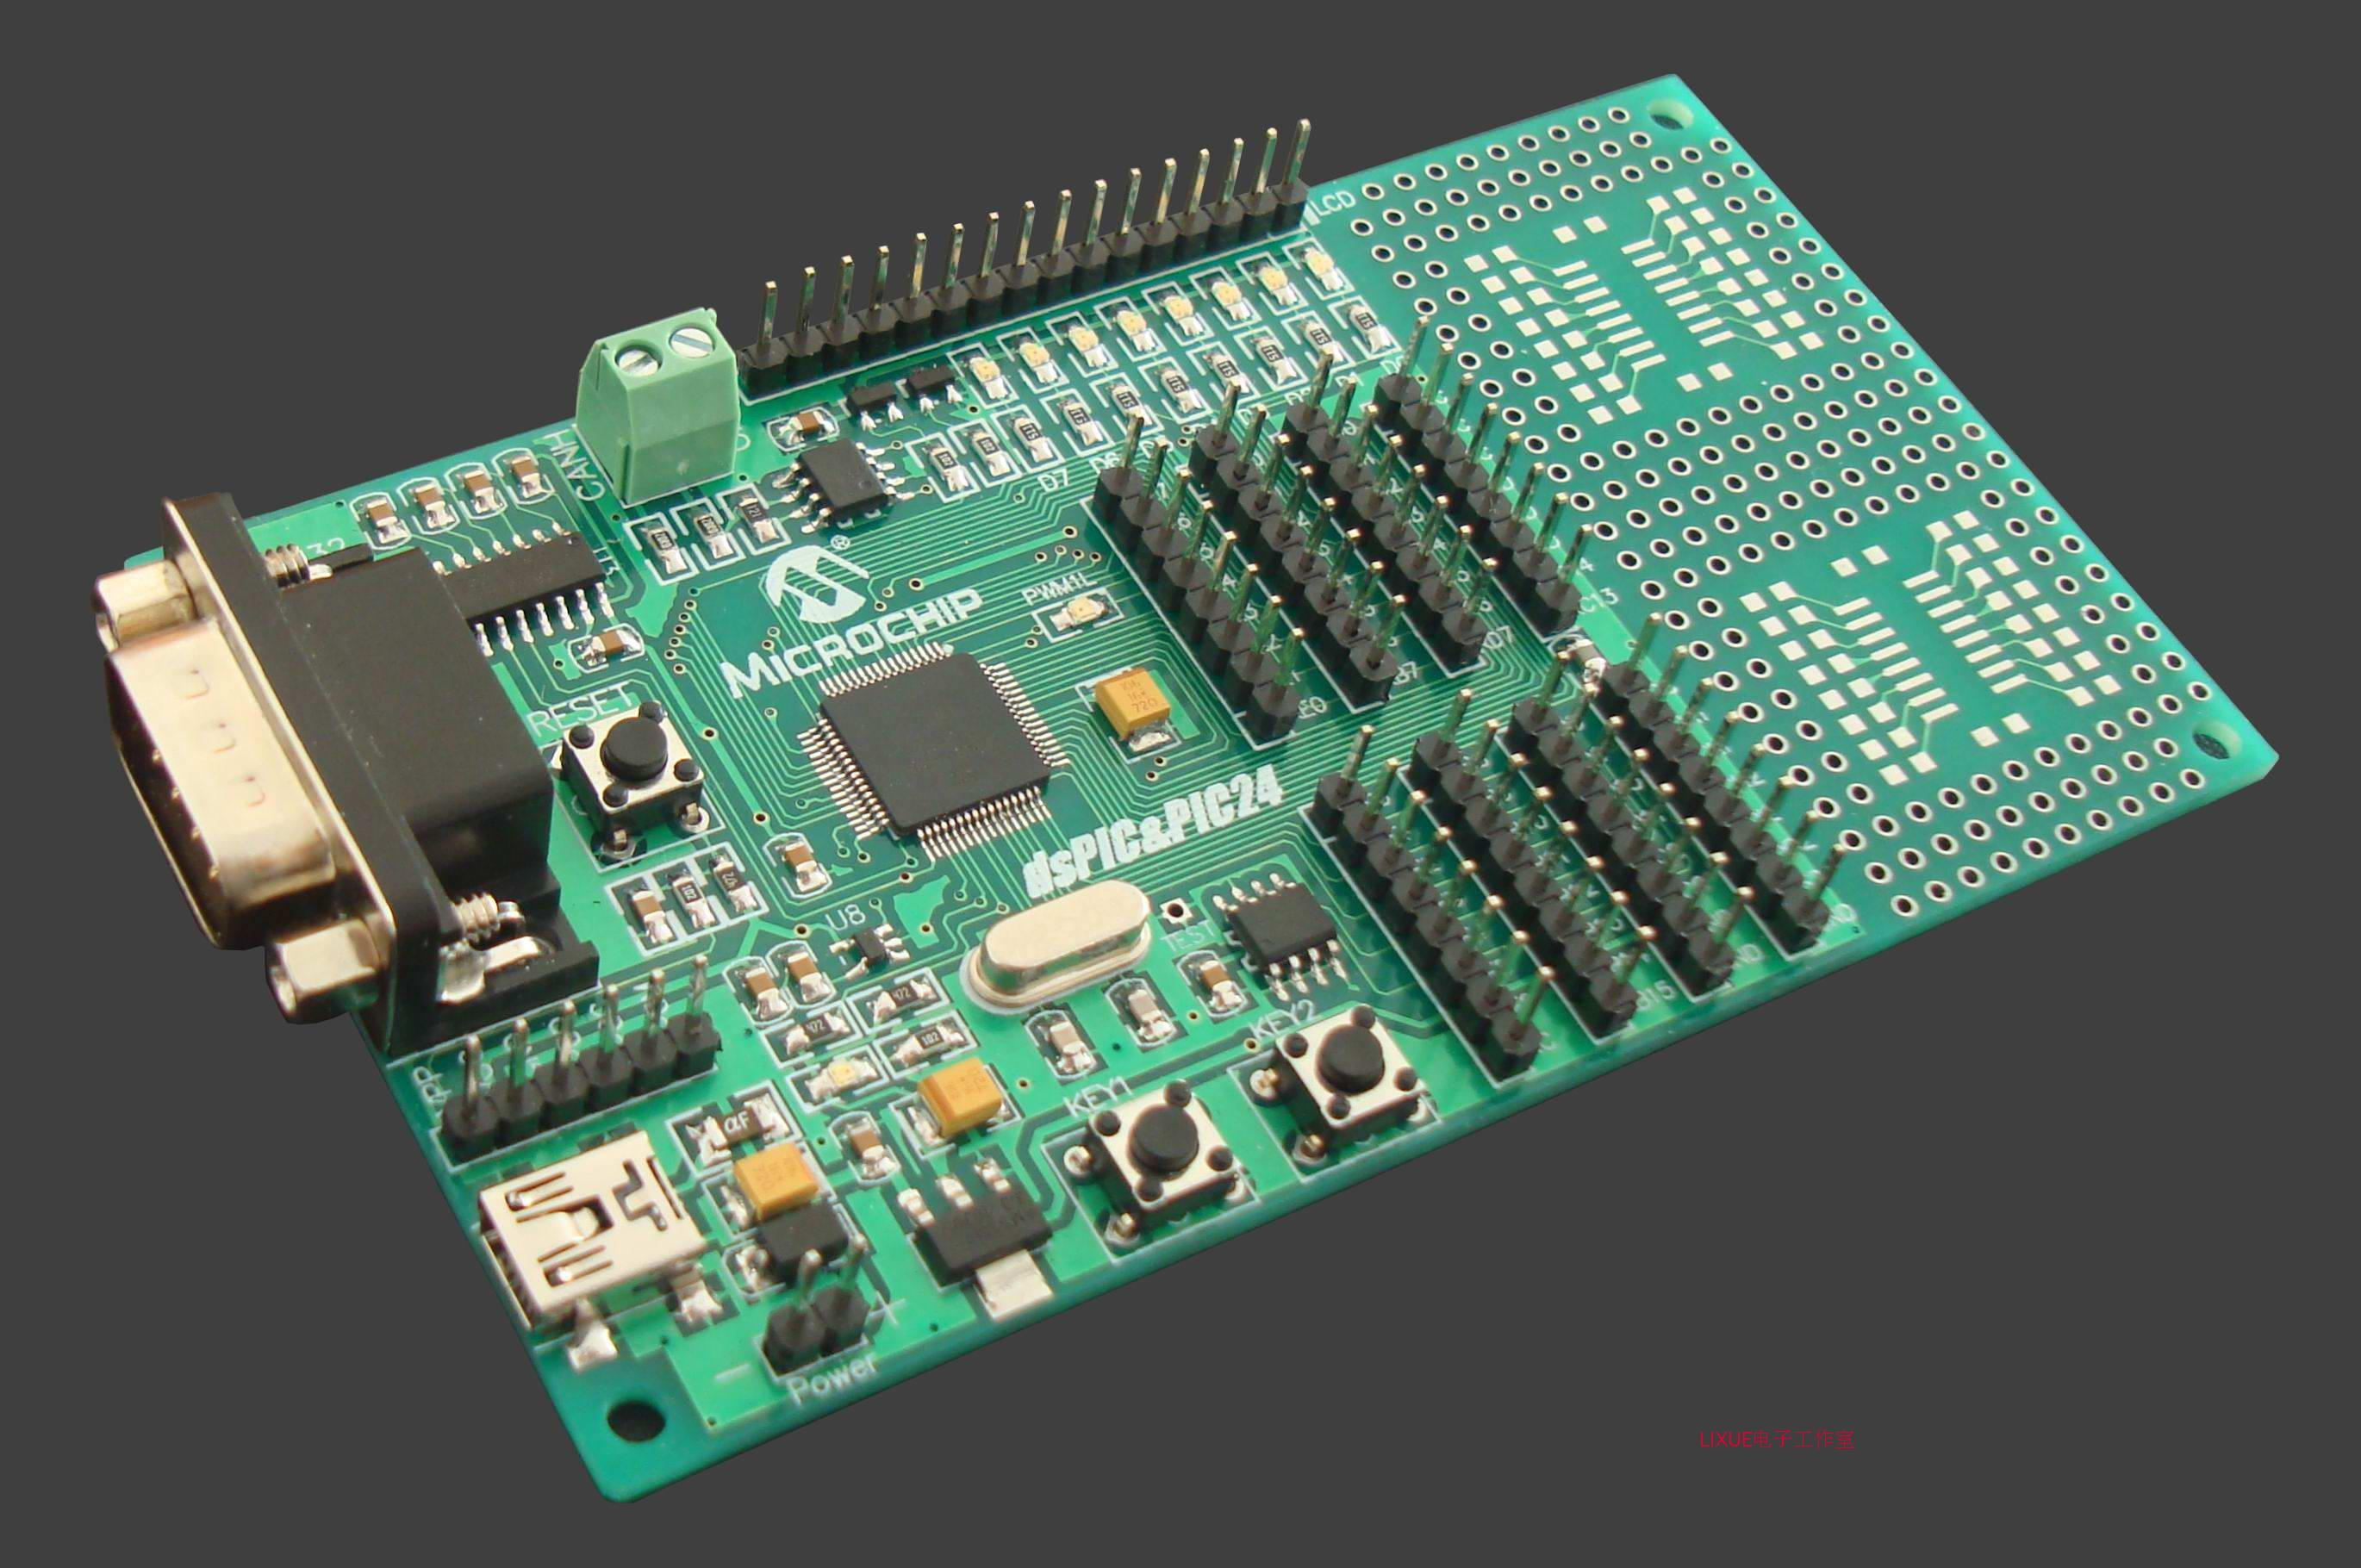 DsPIC33FJ128MC706 microcontroller, CAN motor, PIC learning board, development board, experimental board pic microcontroller development board the experimental board pic18f4520 including pickit2 programmers excluding books